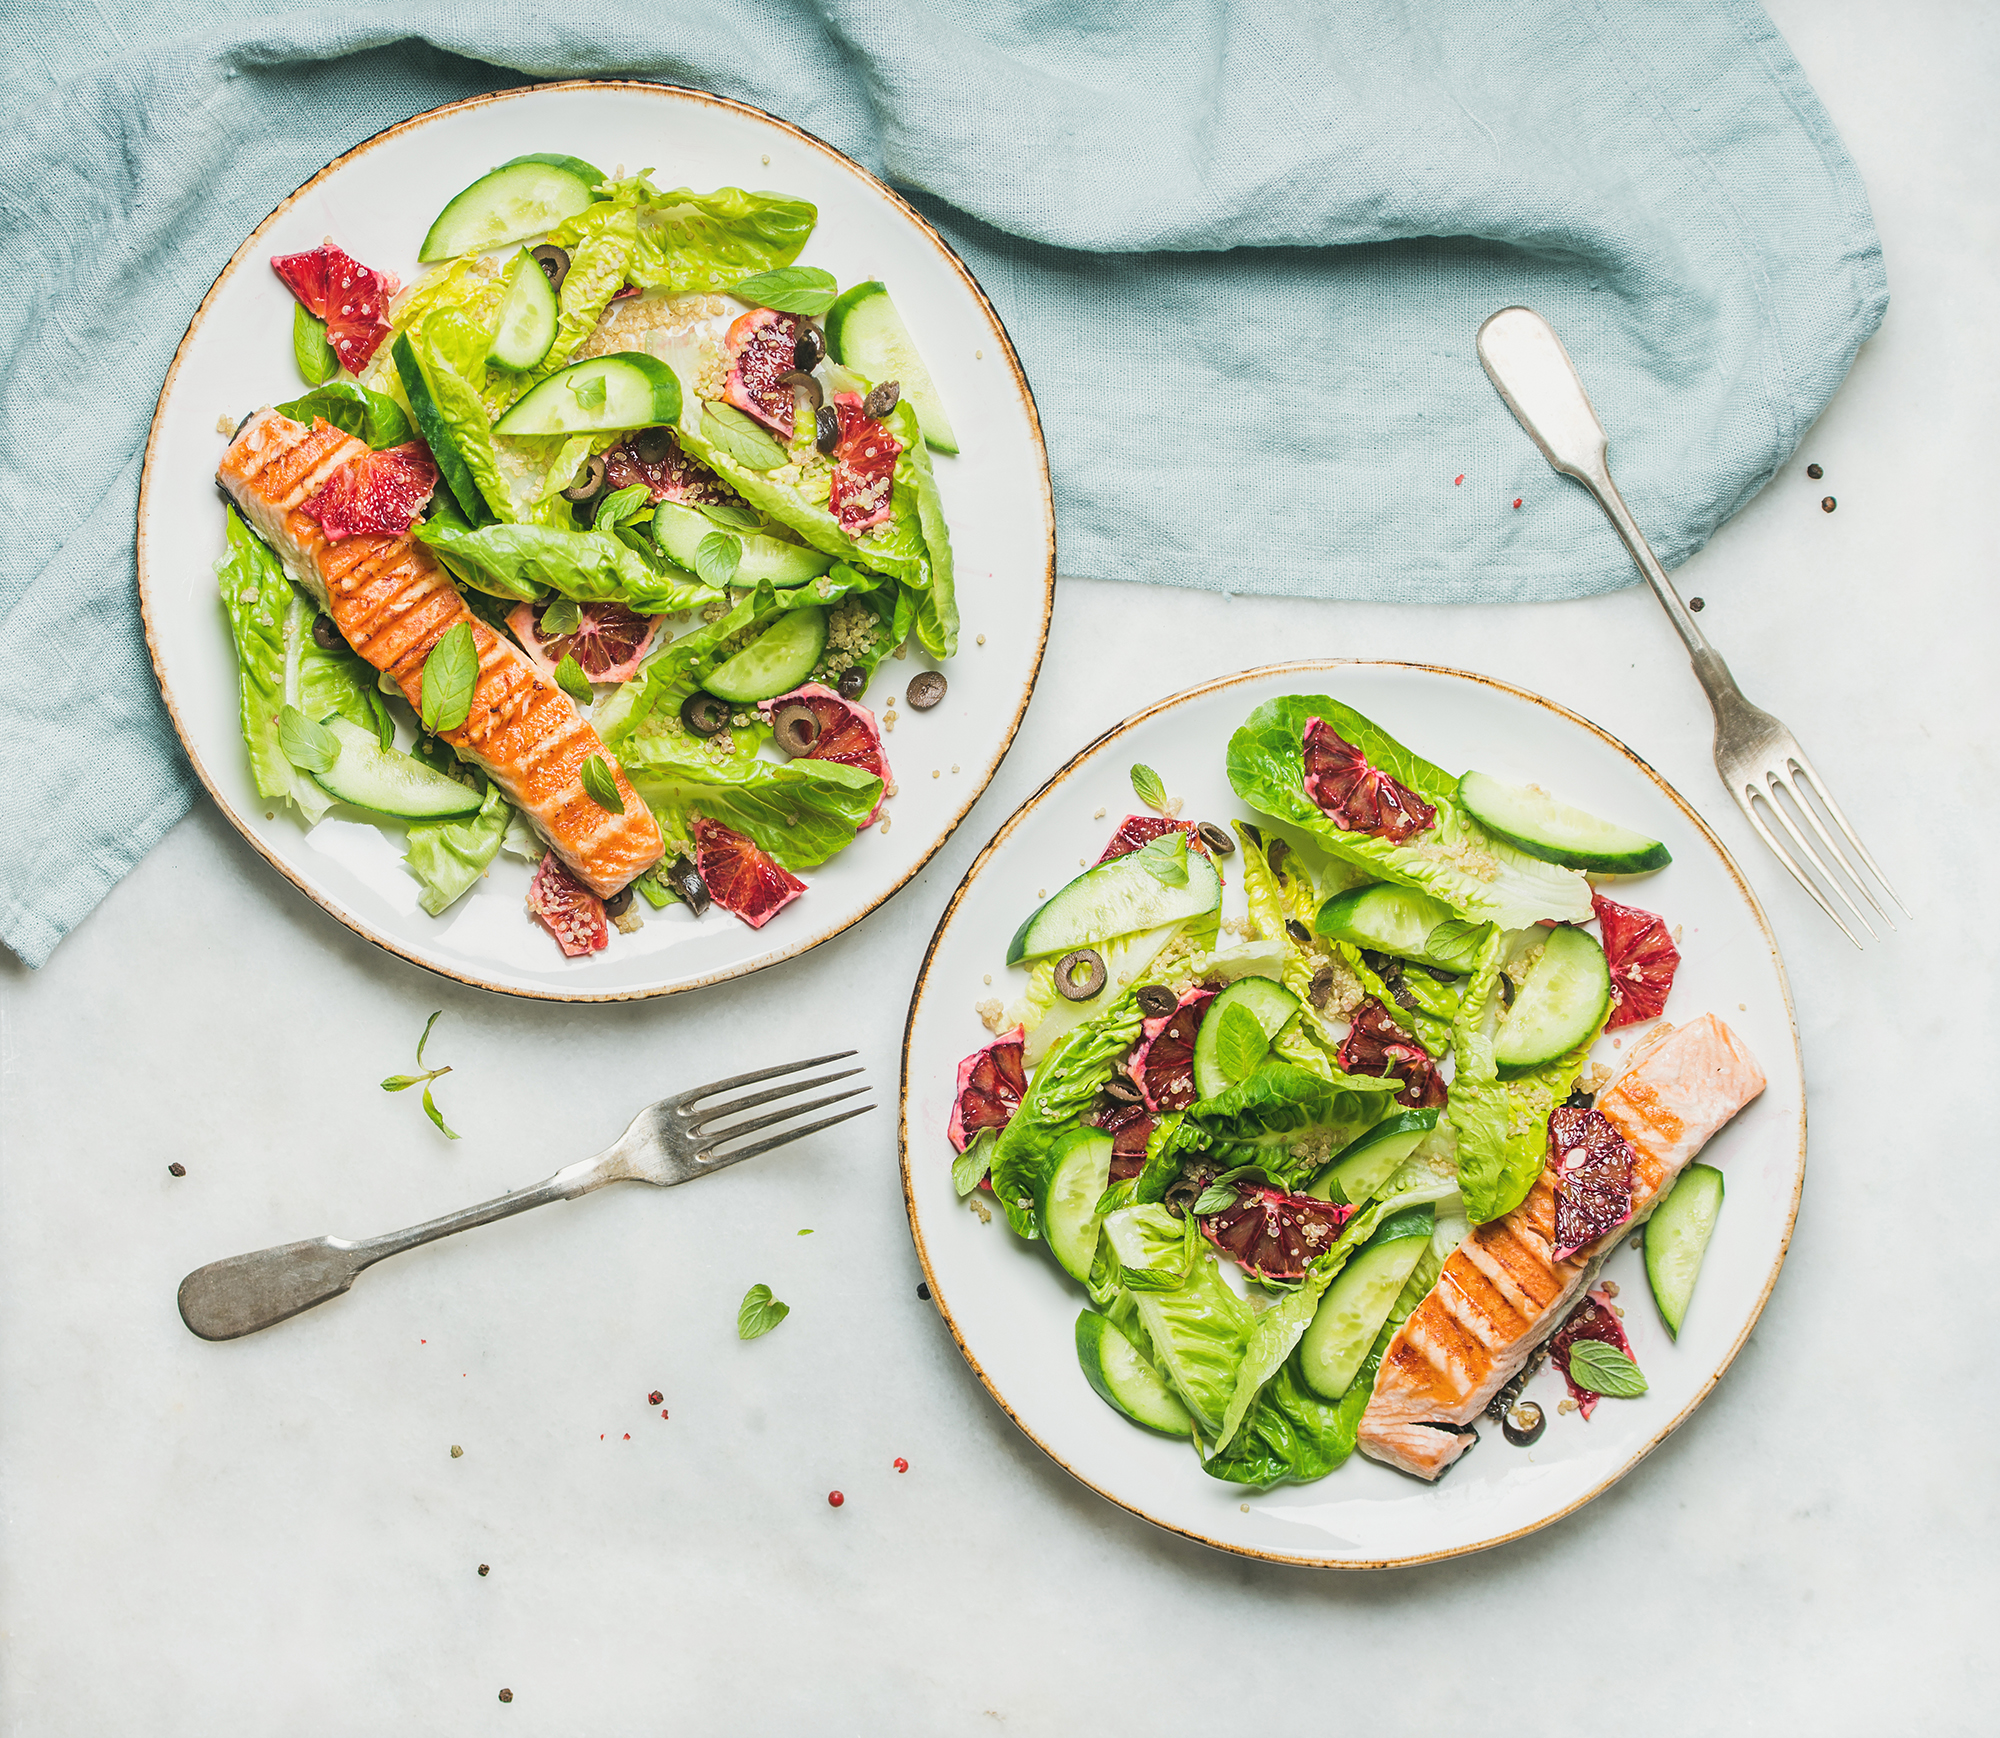 Slow Roasted Salmon with Minted Cucumber